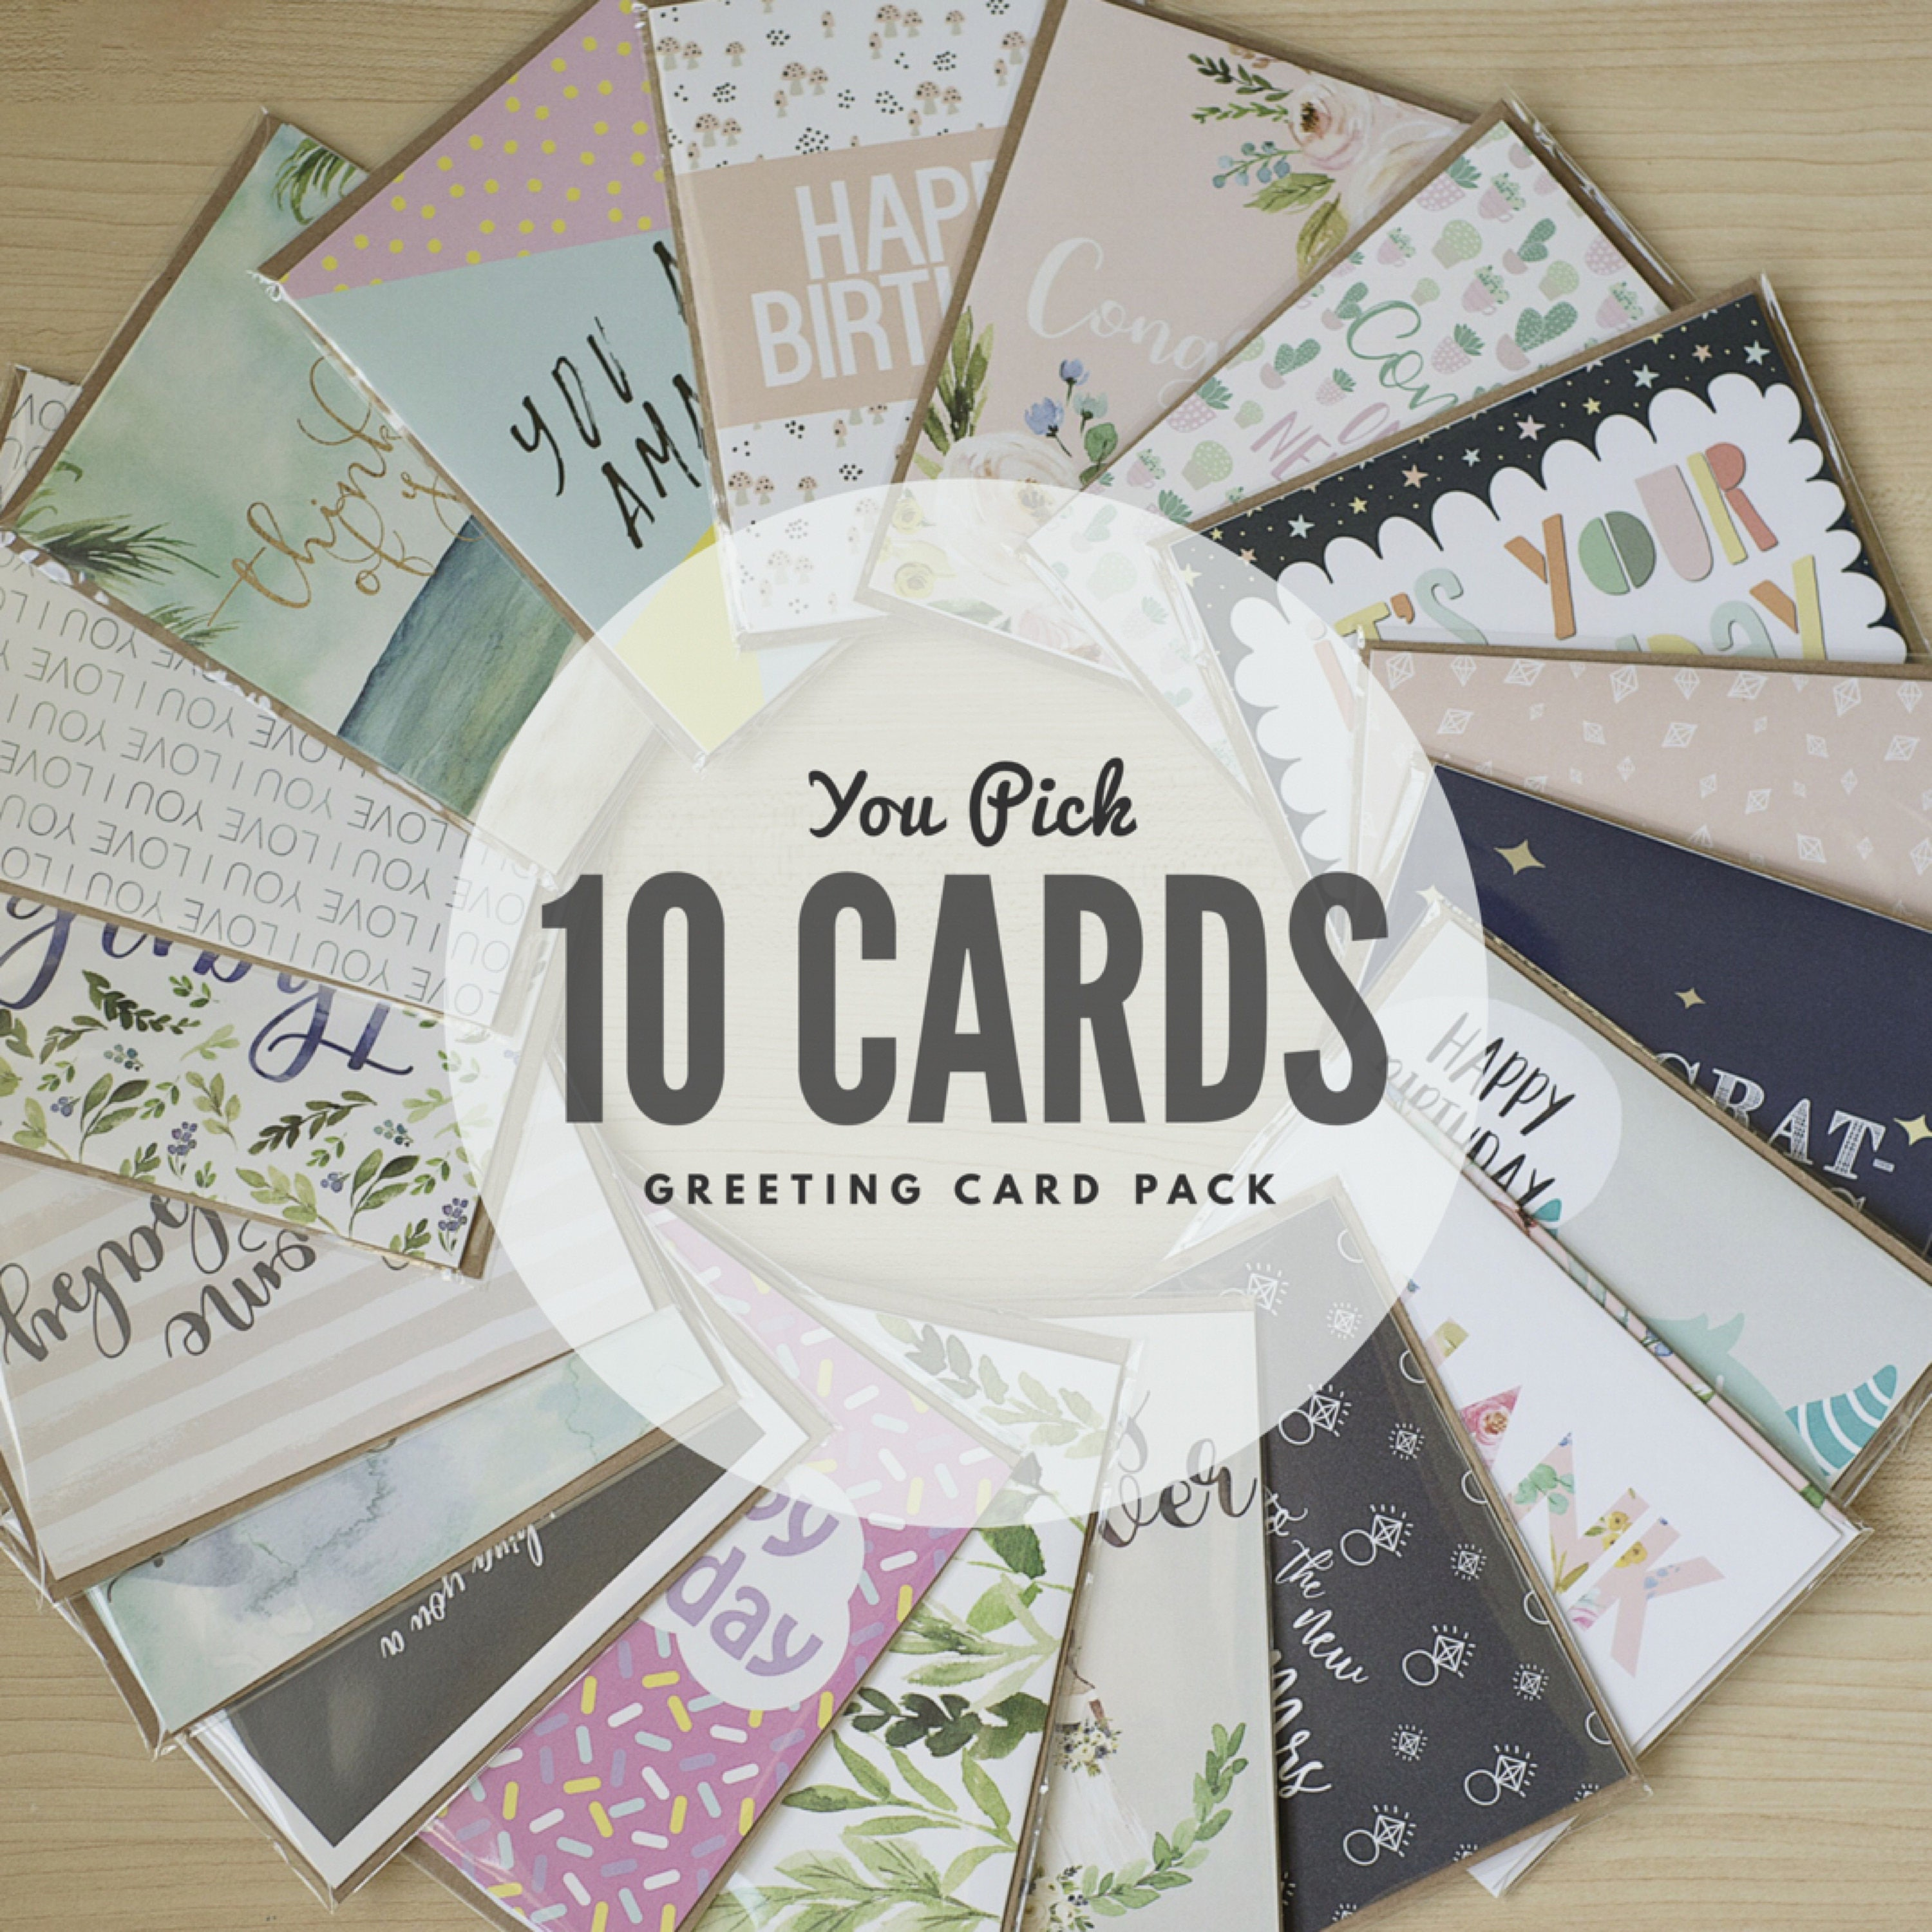 10 pack of greeting cards you pick greeting card set description 10 pack of greeting cards kristyandbryce Image collections